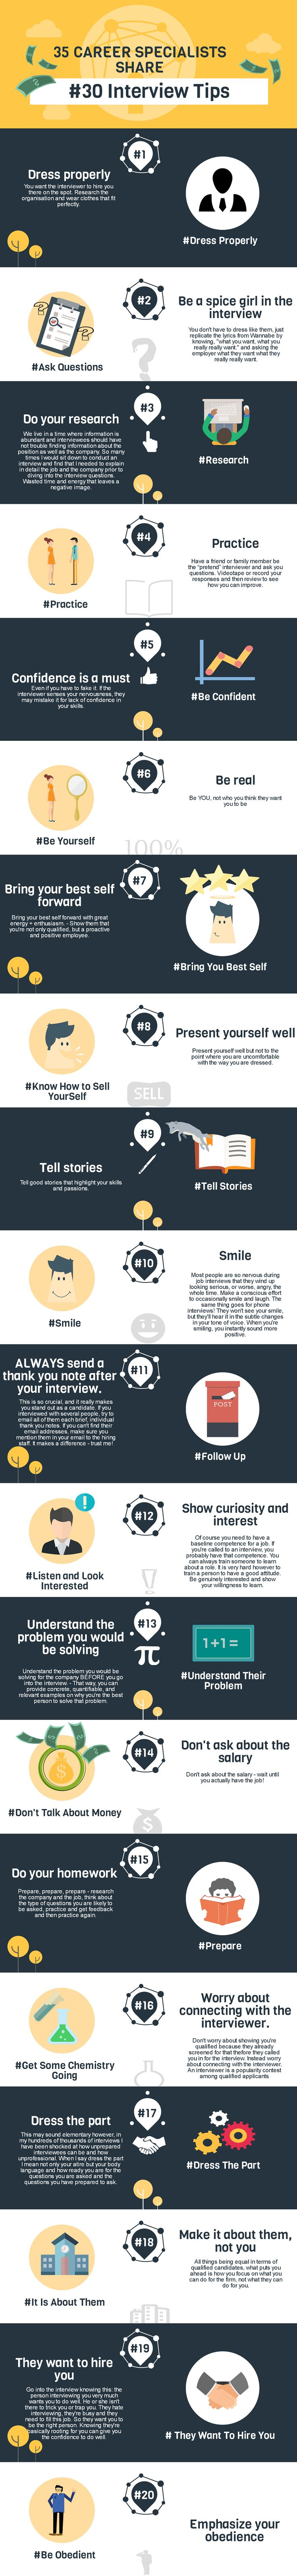 best images about interview tips interview 30 interview tips from 35 career specialists